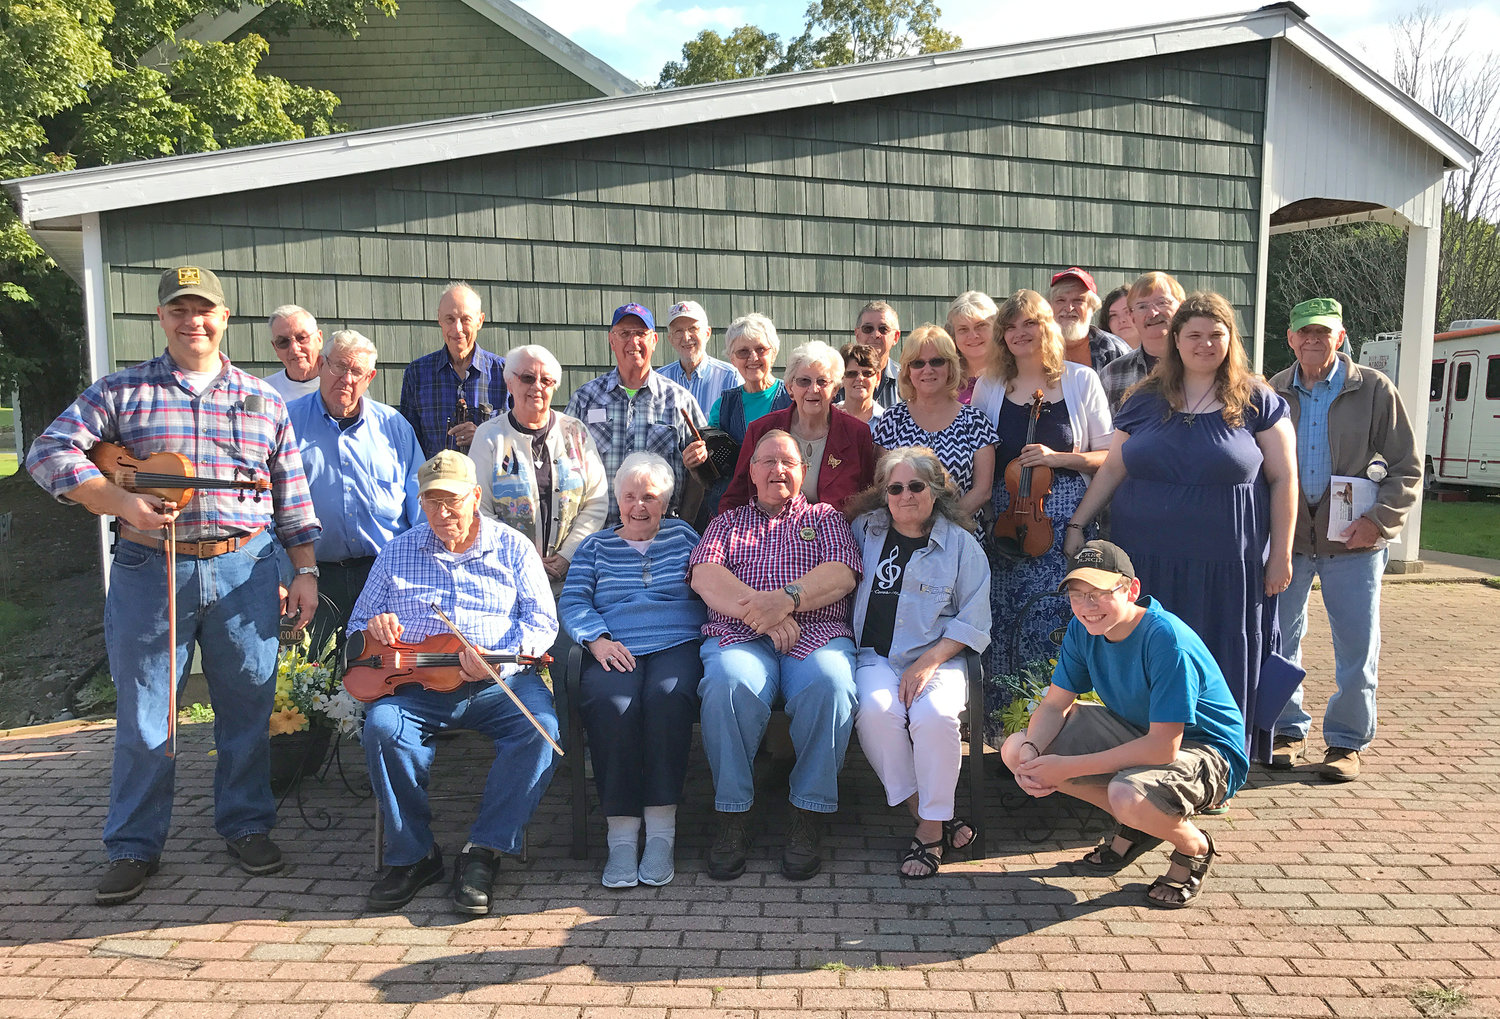 PERFORMING SUNDAY — Members of The New York State Old Tyme Fiddlers Association Central Chapter